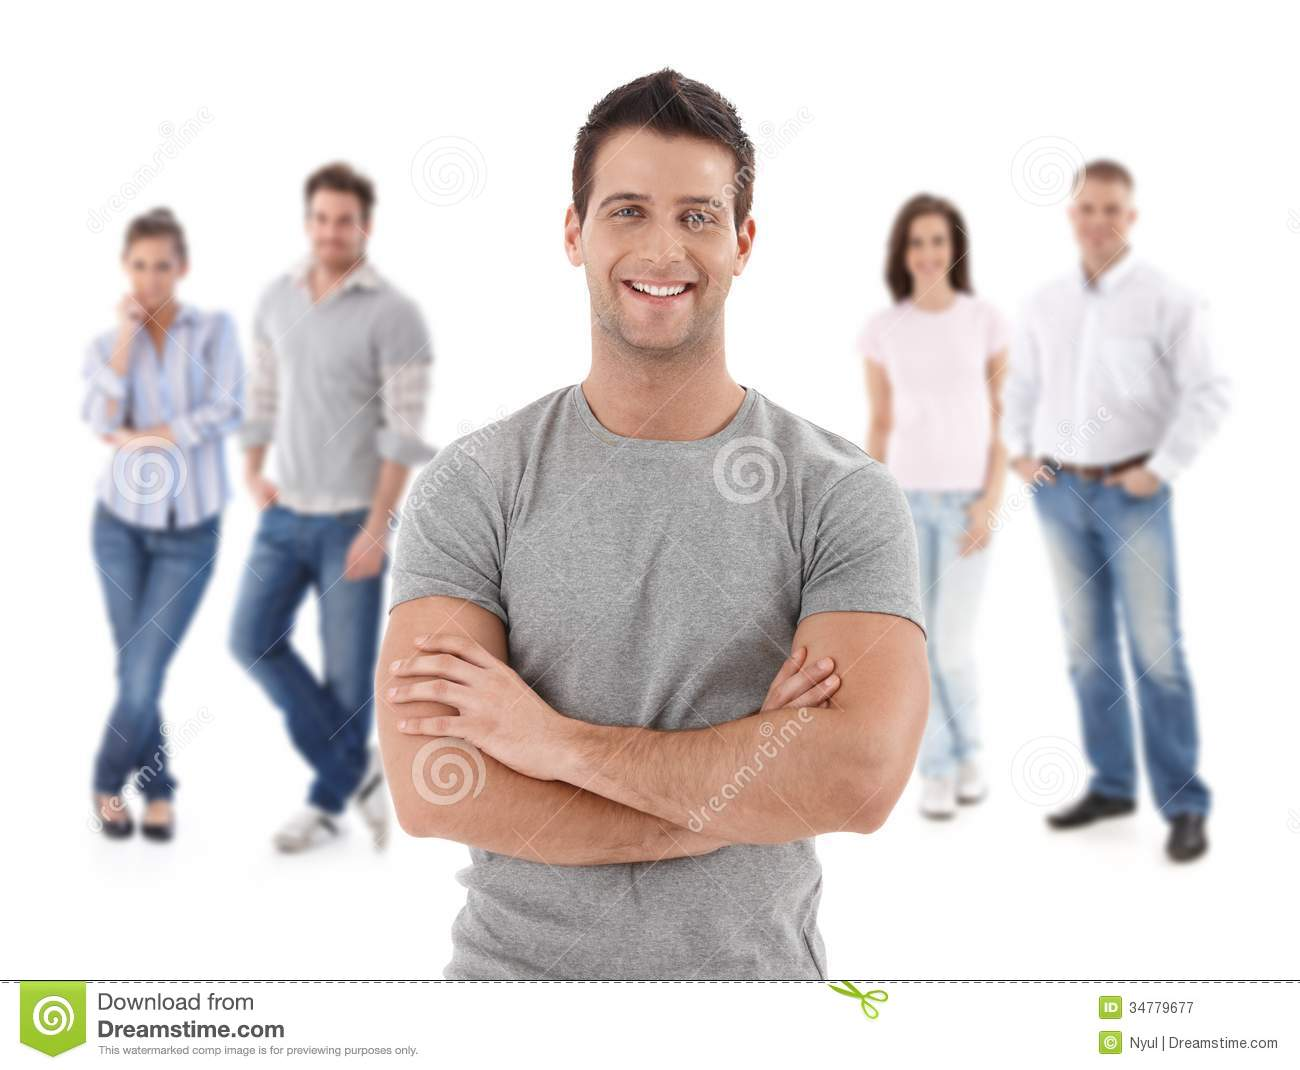 group-happy-young-people-smiling-men-fro